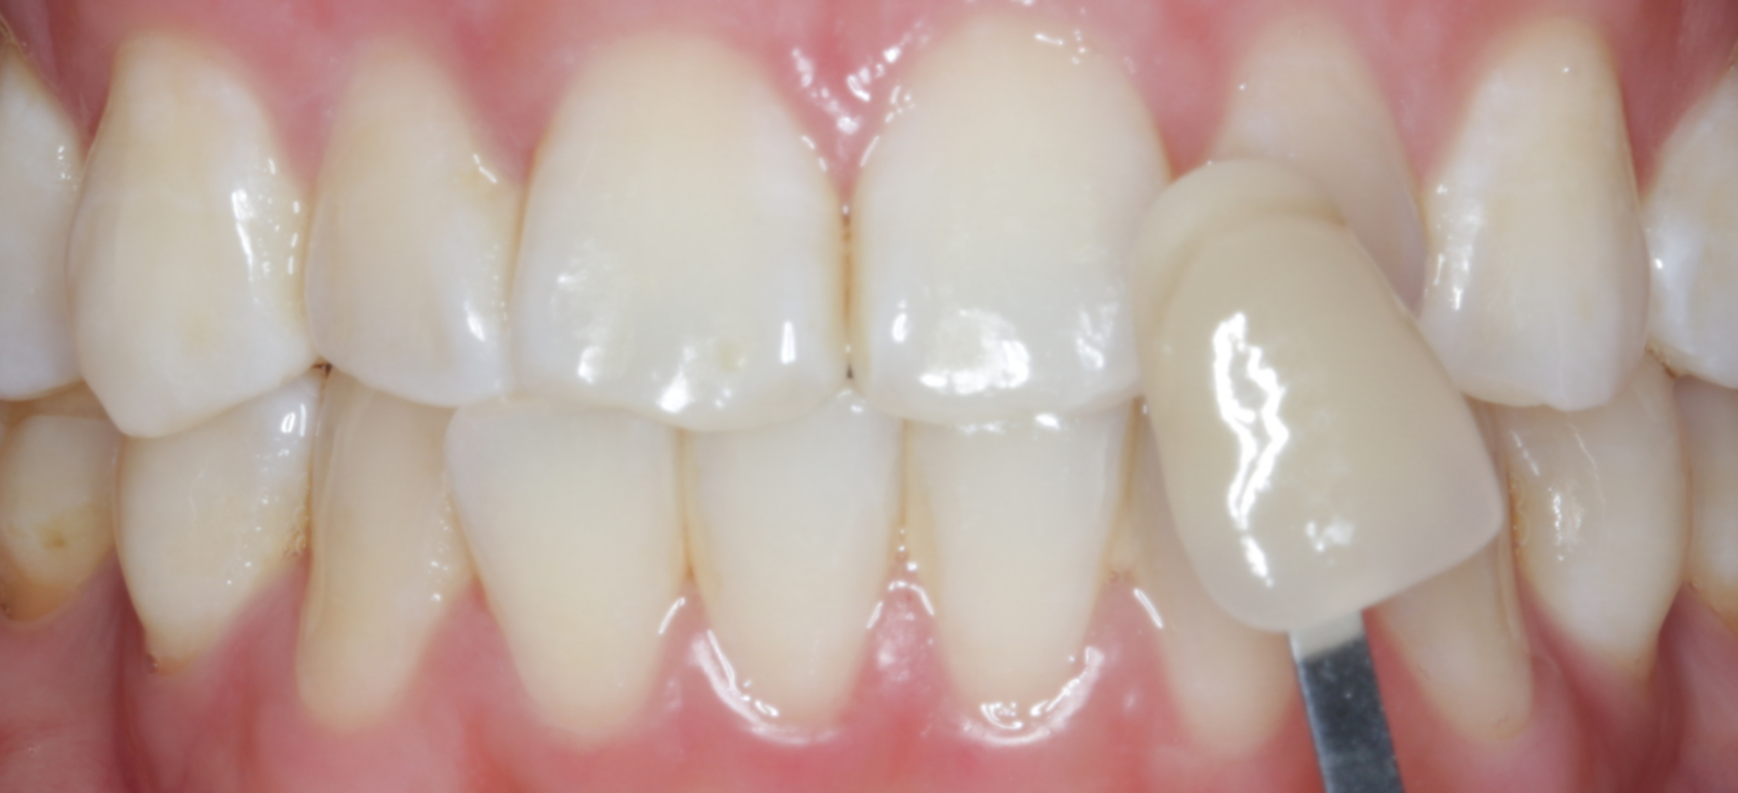 After in-chair whitening and 1 week of take-home whitening.